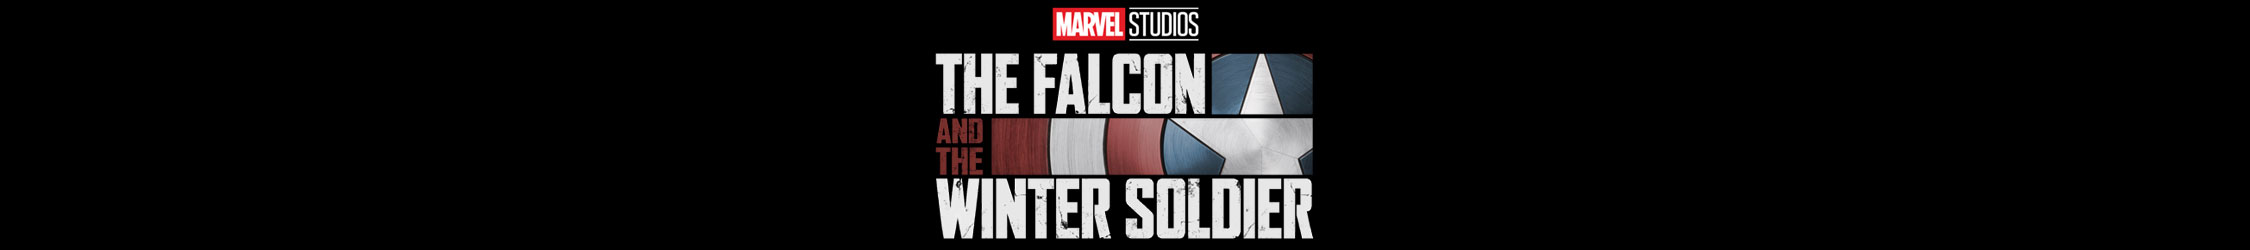 falconwintersoldier